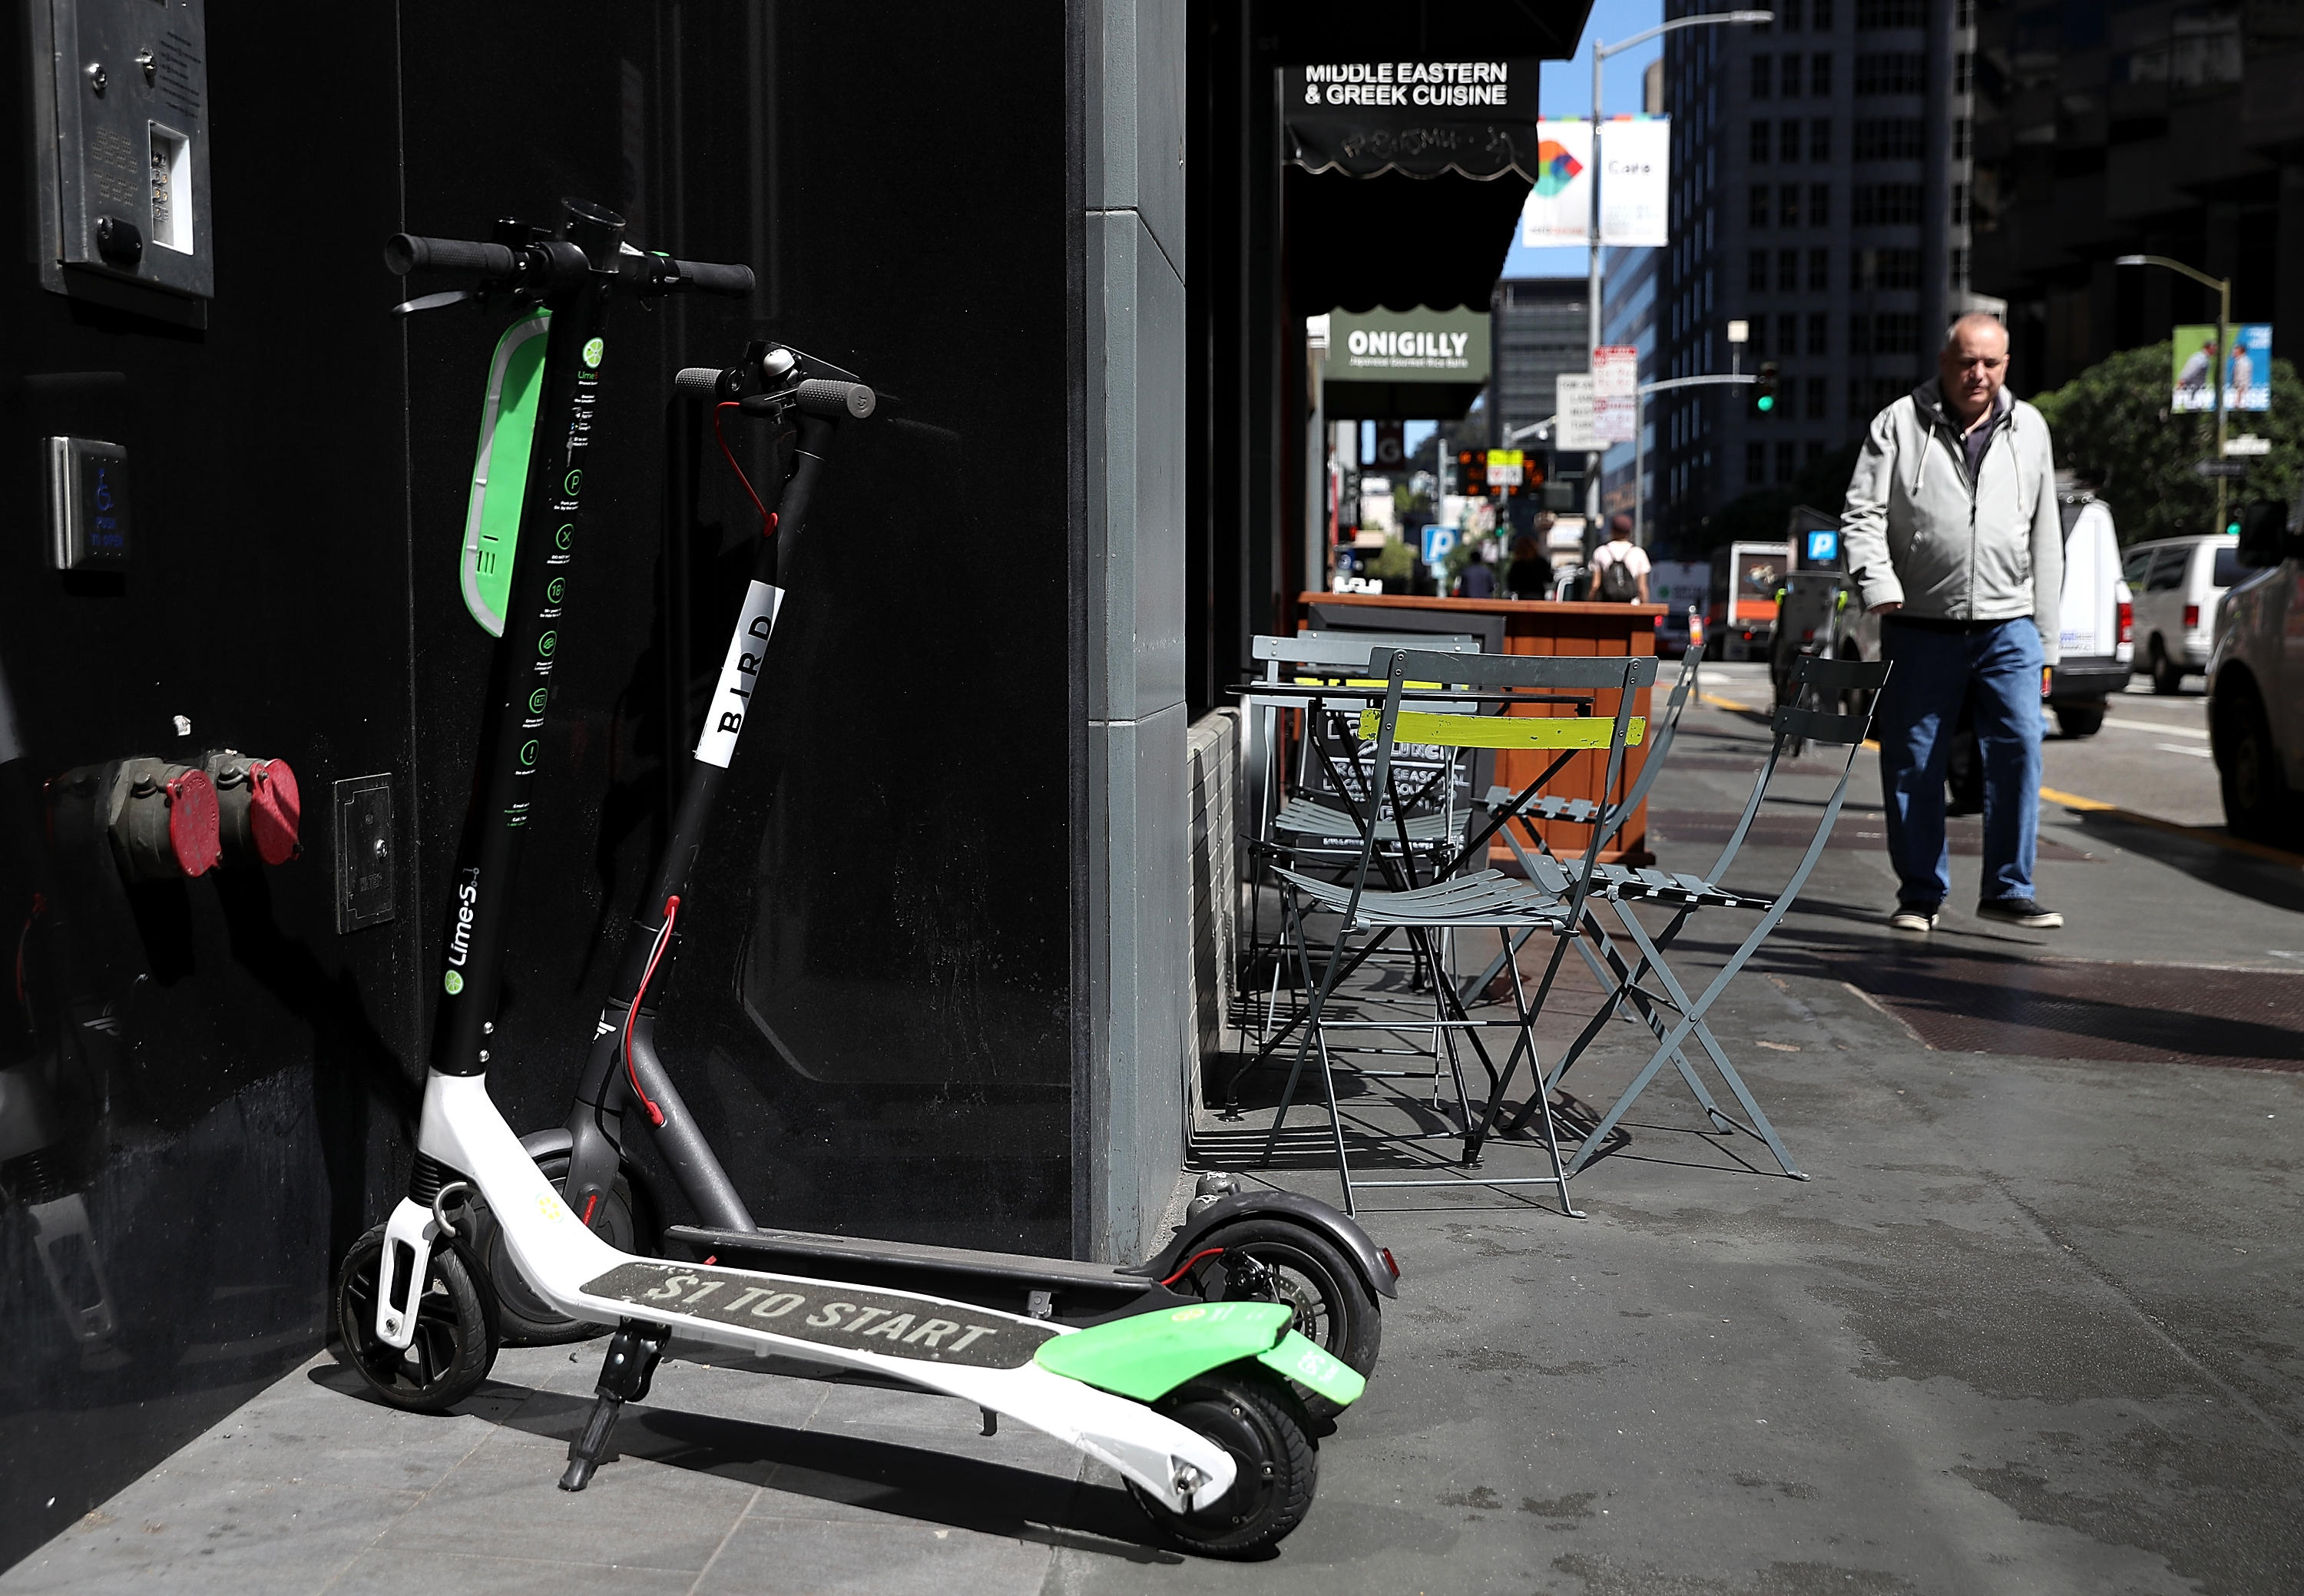 Uber, Lyft eye two-wheeled business: Electric scooters - CBS